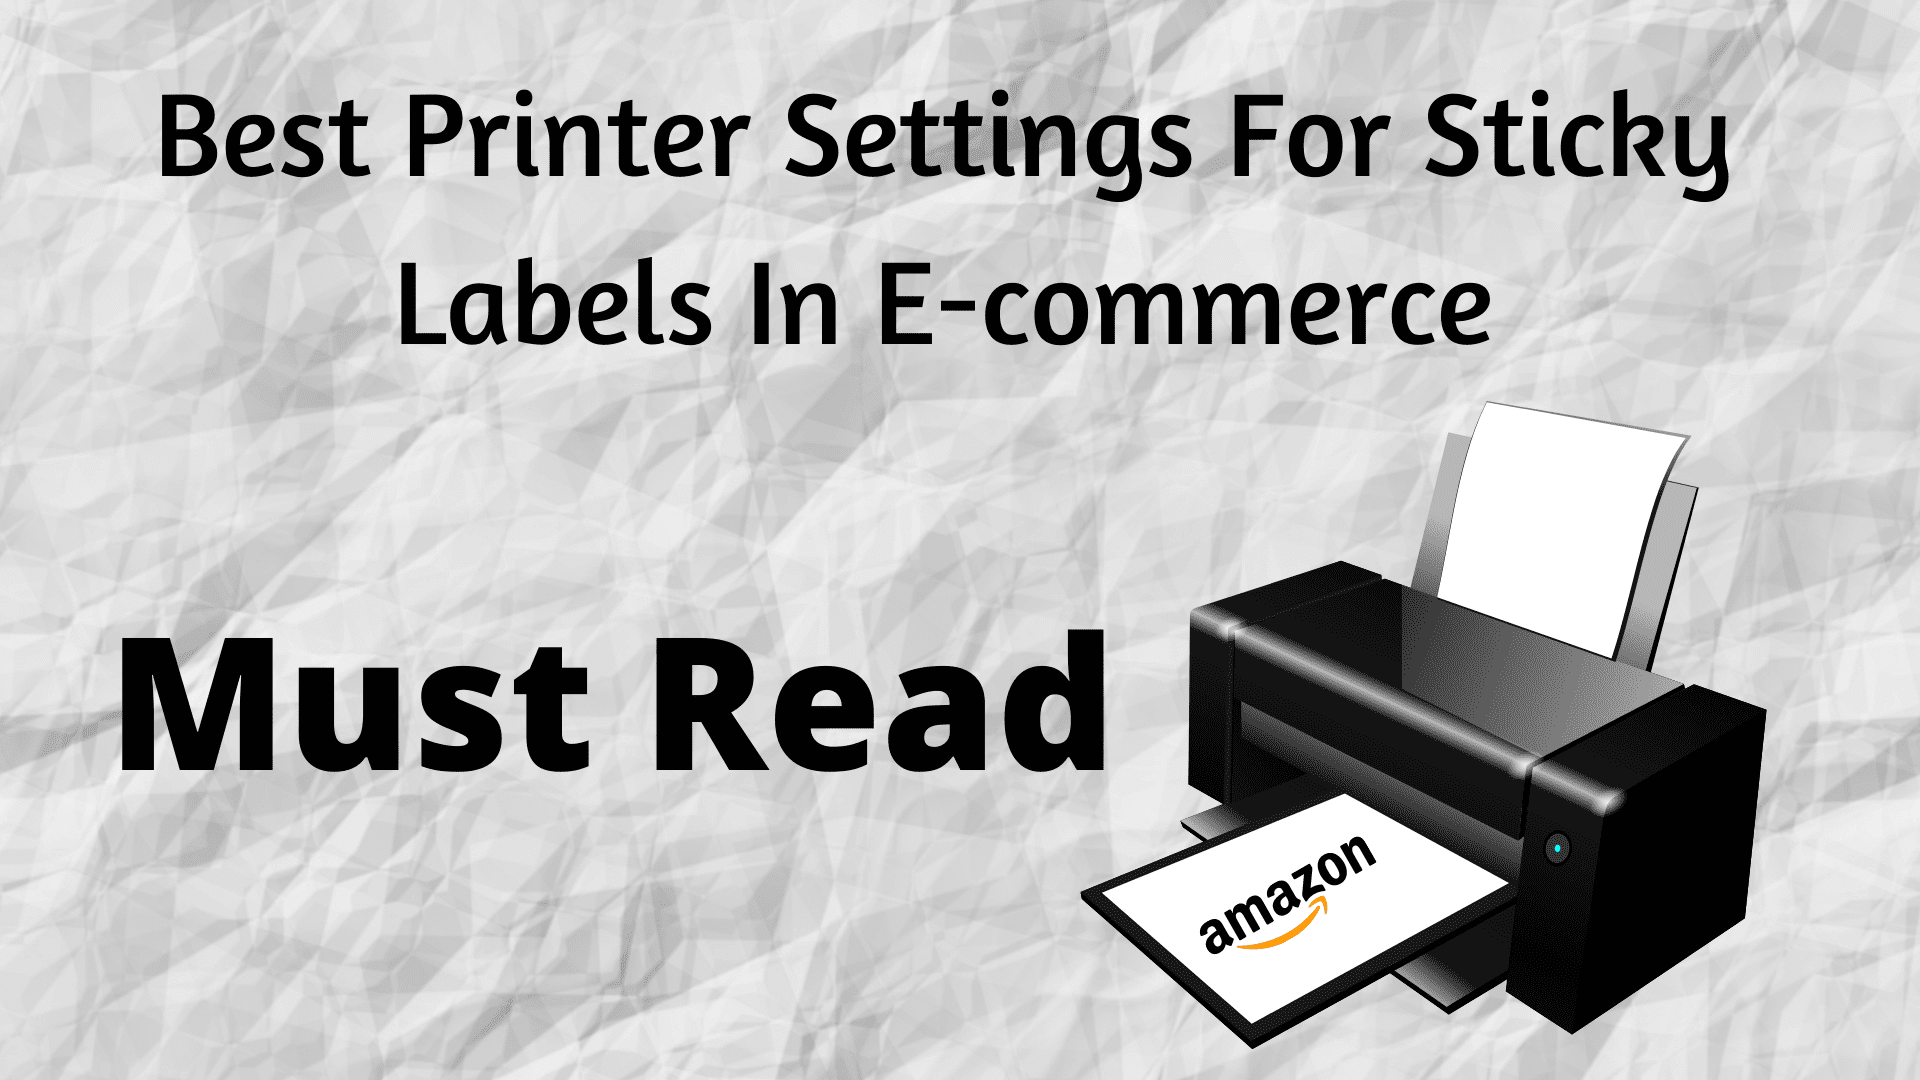 Best Printer Settings For Sticky Labels In E-commerce,Printer Settings,printer settings for heavy paper,how to adjust paper thickness for printer,print setting for e commerce sites,print setting for e commerce,sticky labels printer